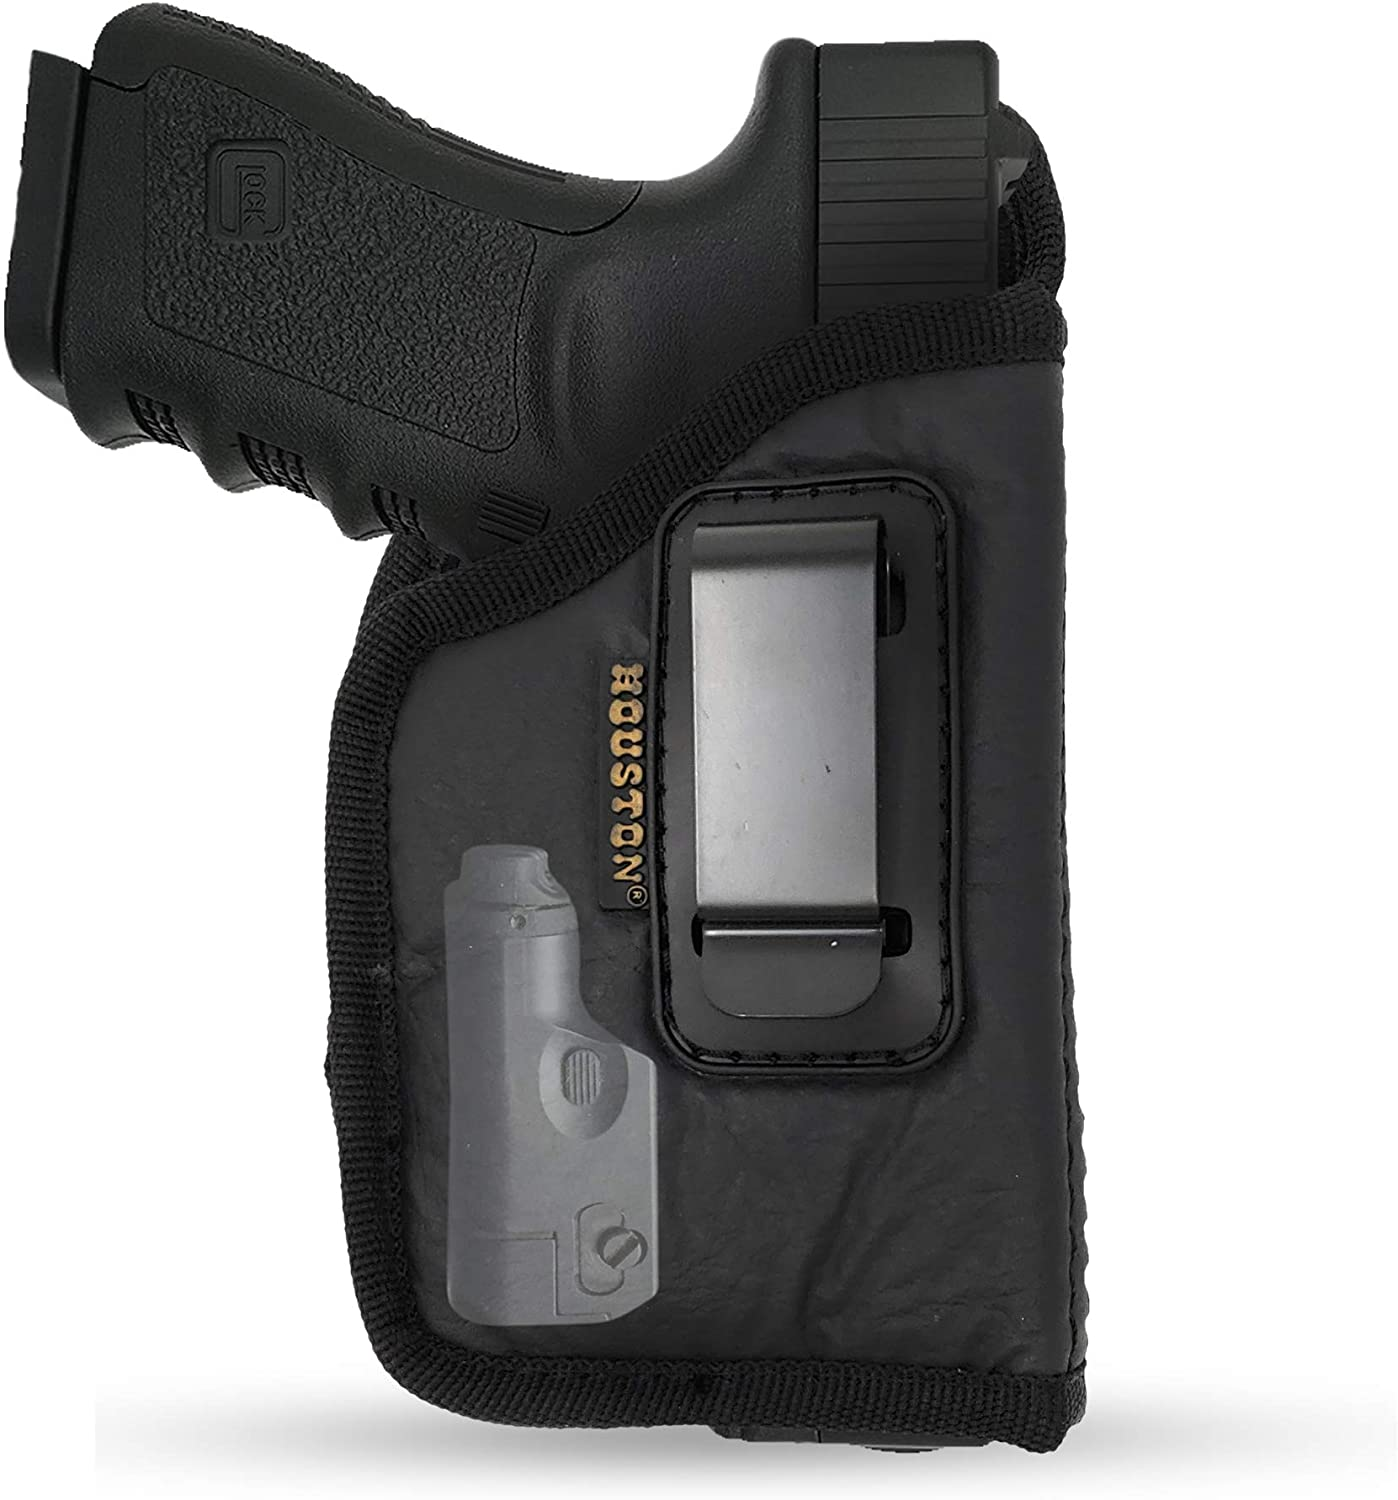 IWB Gun Holster by Houston - ECO Leather Concealment Inside The Waistband with Metal Clip FITS Most MIDSIZES & Compact 9/40/45 with Laser